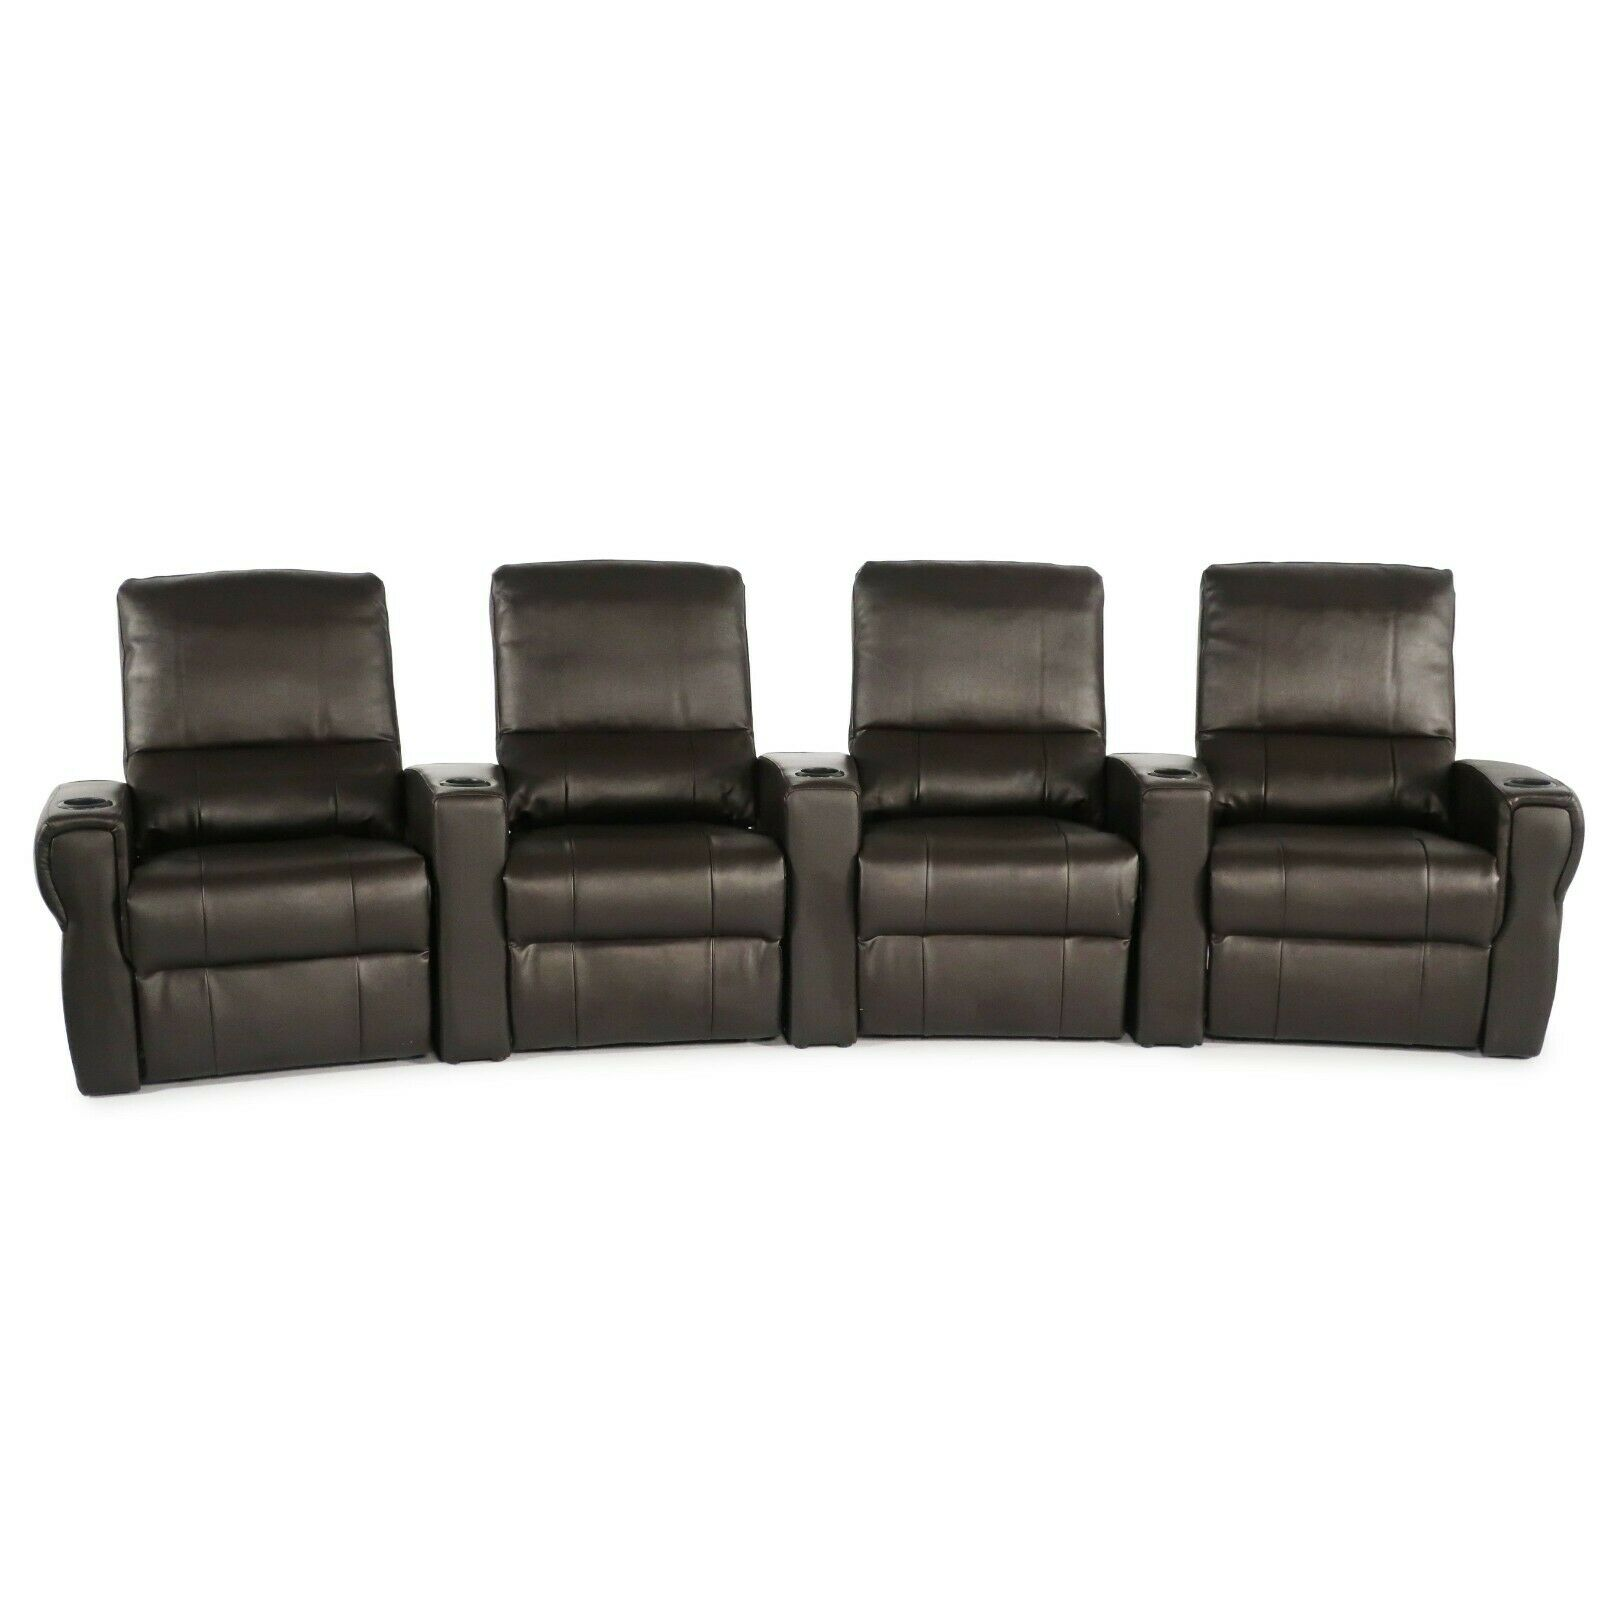 Seatcraft Pallas Brown Leather Recline Home Theater Chairs R